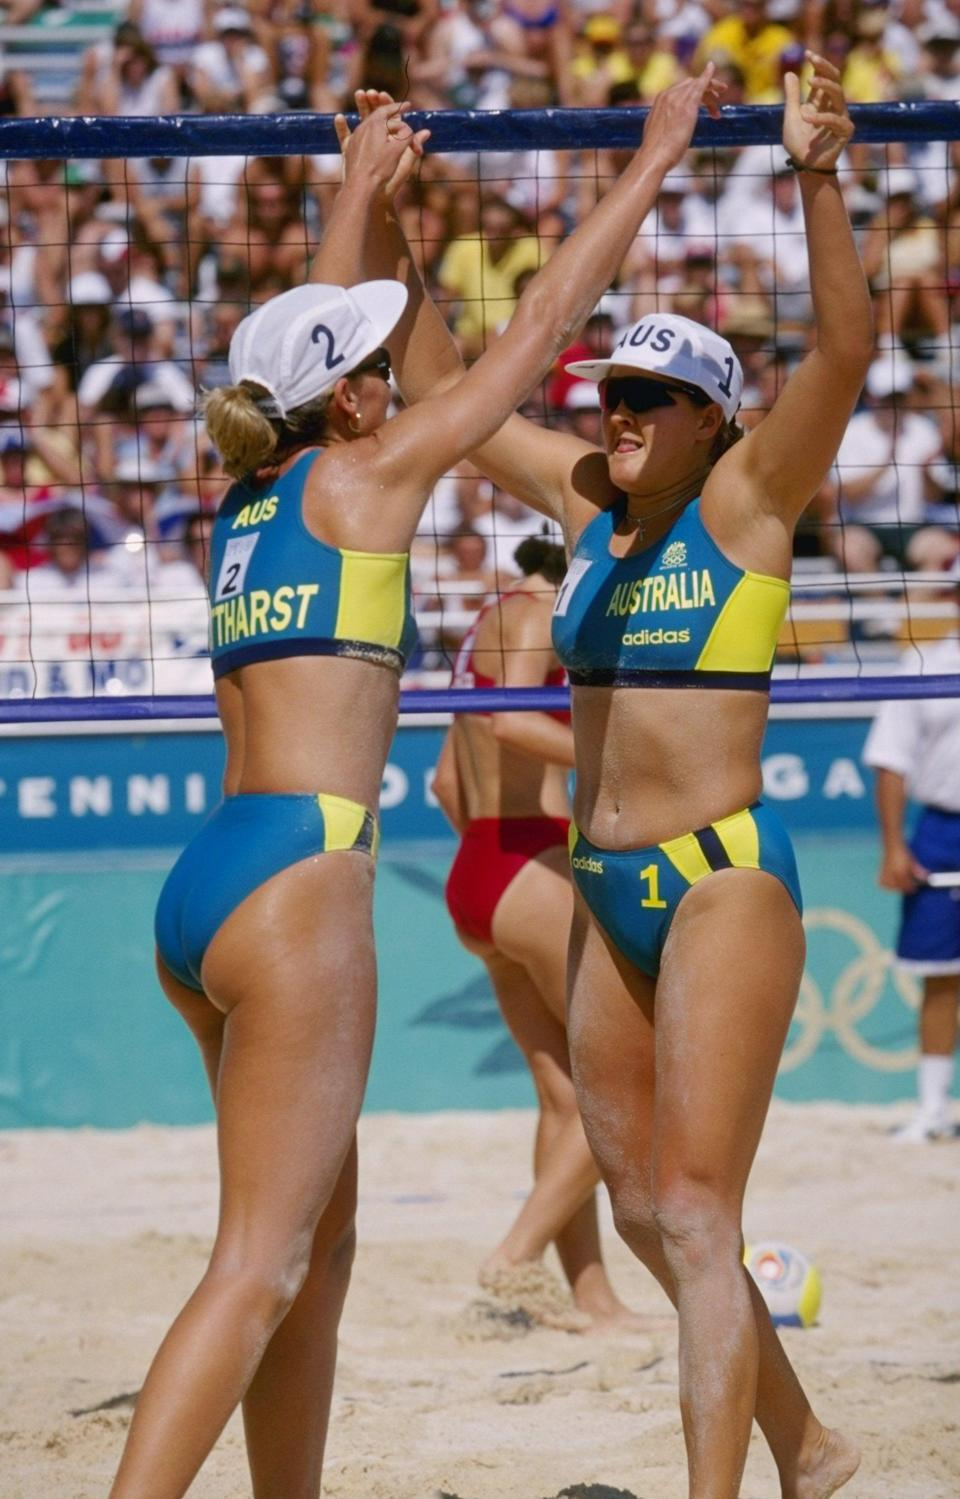 Women playing beach volleyball at the 1996 Olympics (Getty)